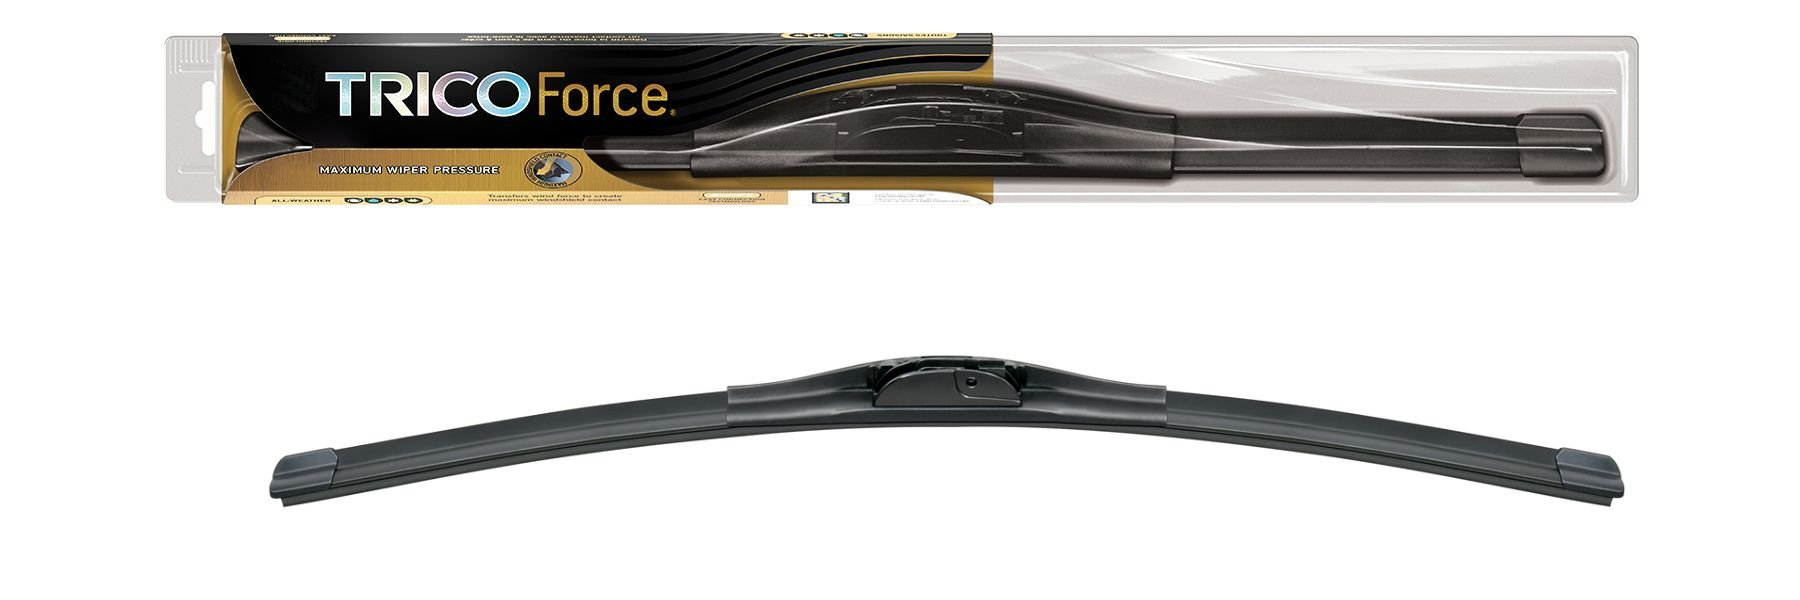 TRICO Force 25-260 High Performance Beam Wiper Blade - 26'' (Pack of 1)